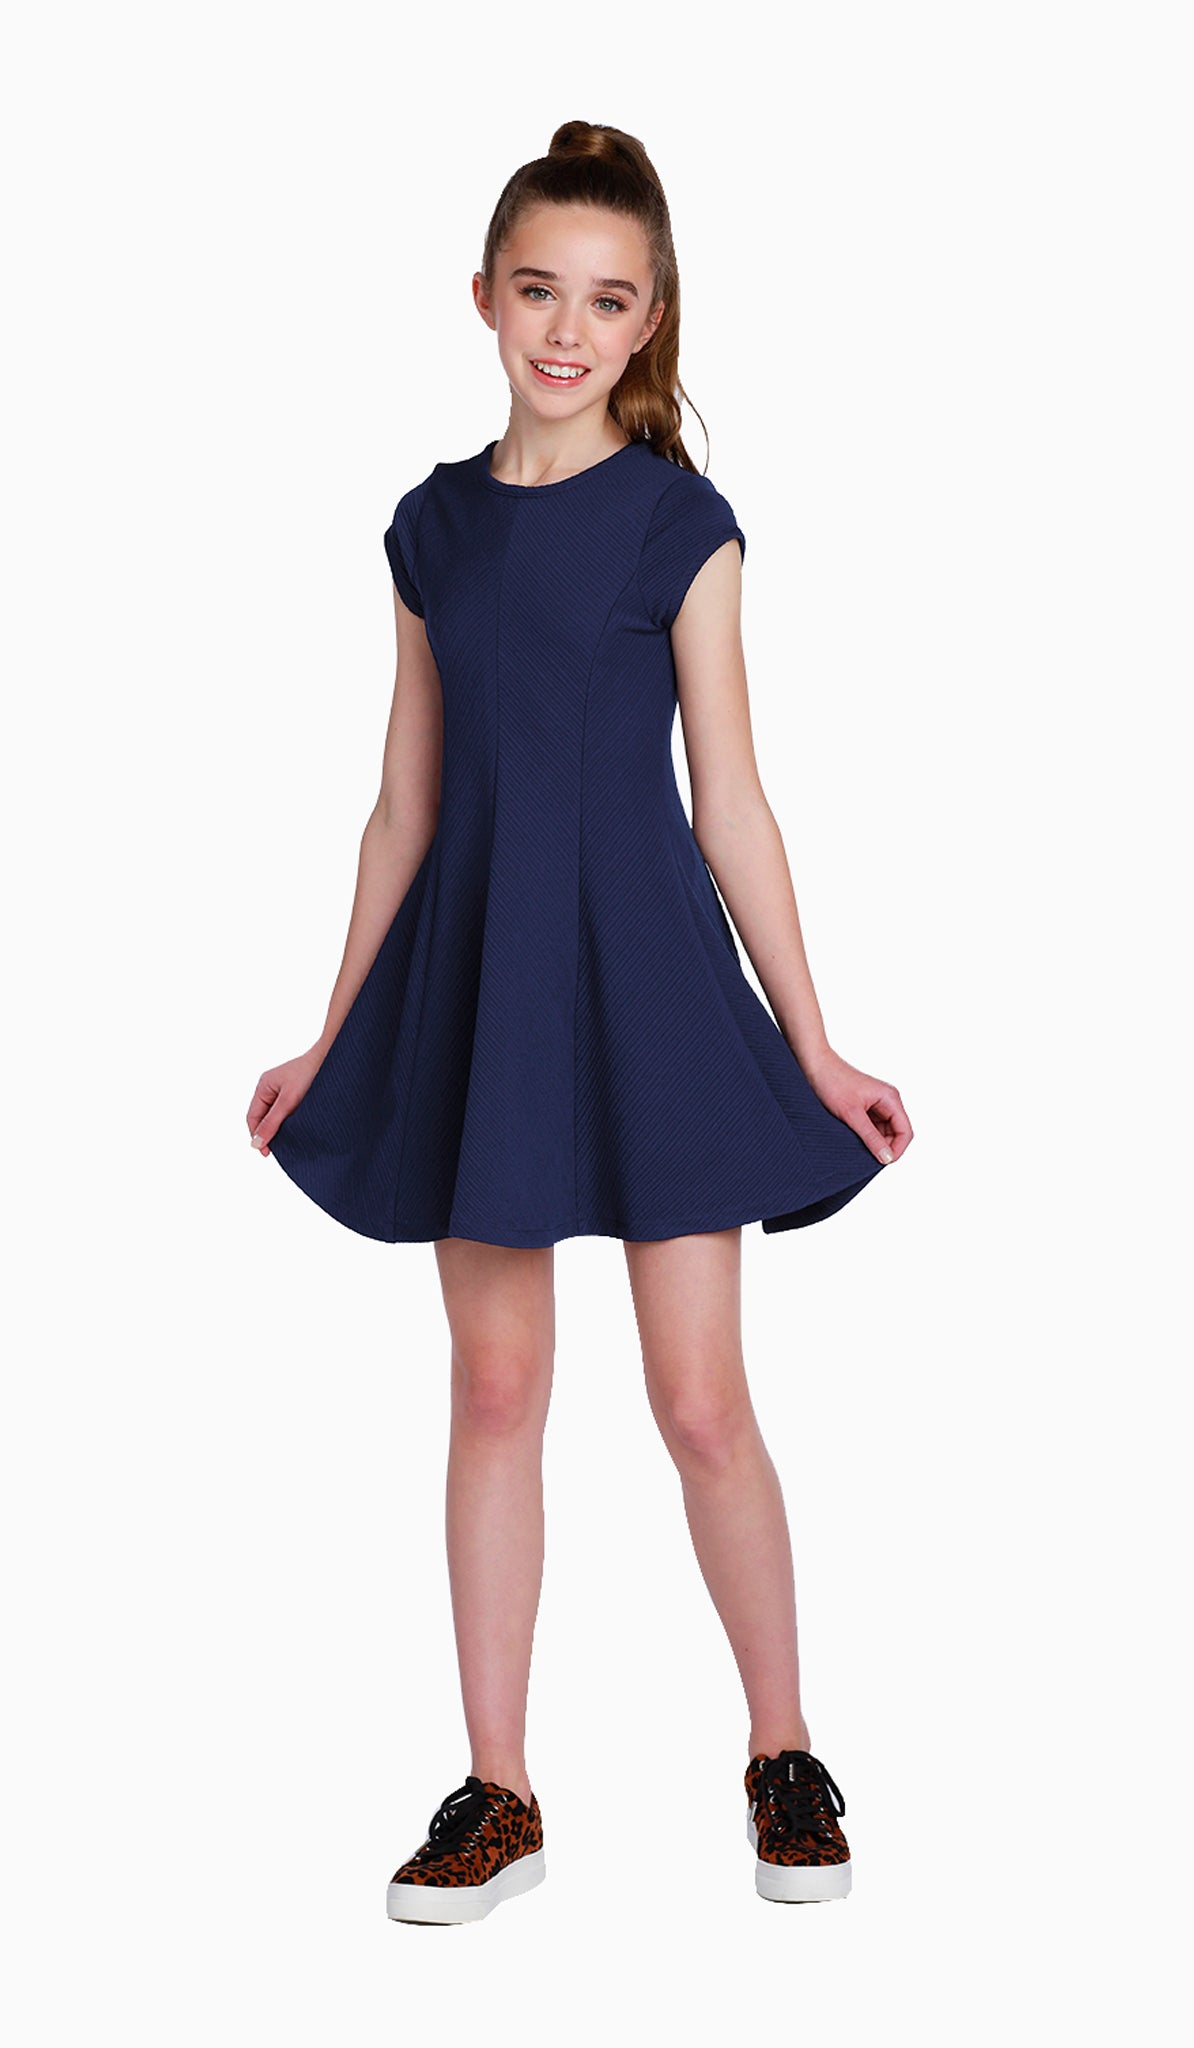 The Sally Miller Sandra Dress | Navy textured stretch knit fit and flare dress with cap sleeves |  | Luxury tween dresses & juniors dresses for all occasions and events